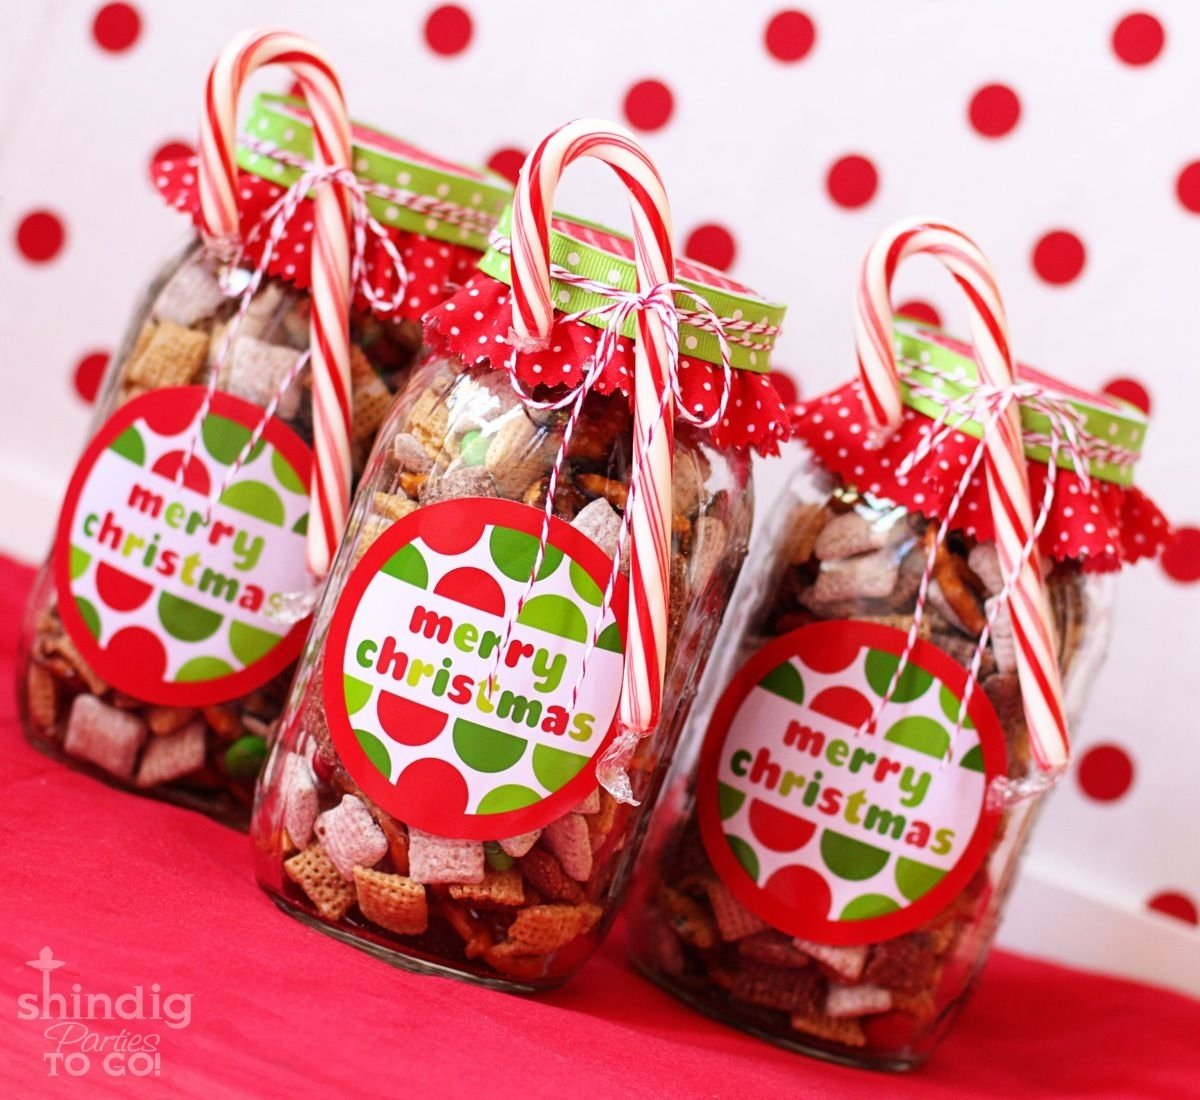 10 Great Homemade Christmas Gift Ideas For Coworkers amandas parties to go free merry christmas tags and gift idea 8 2021